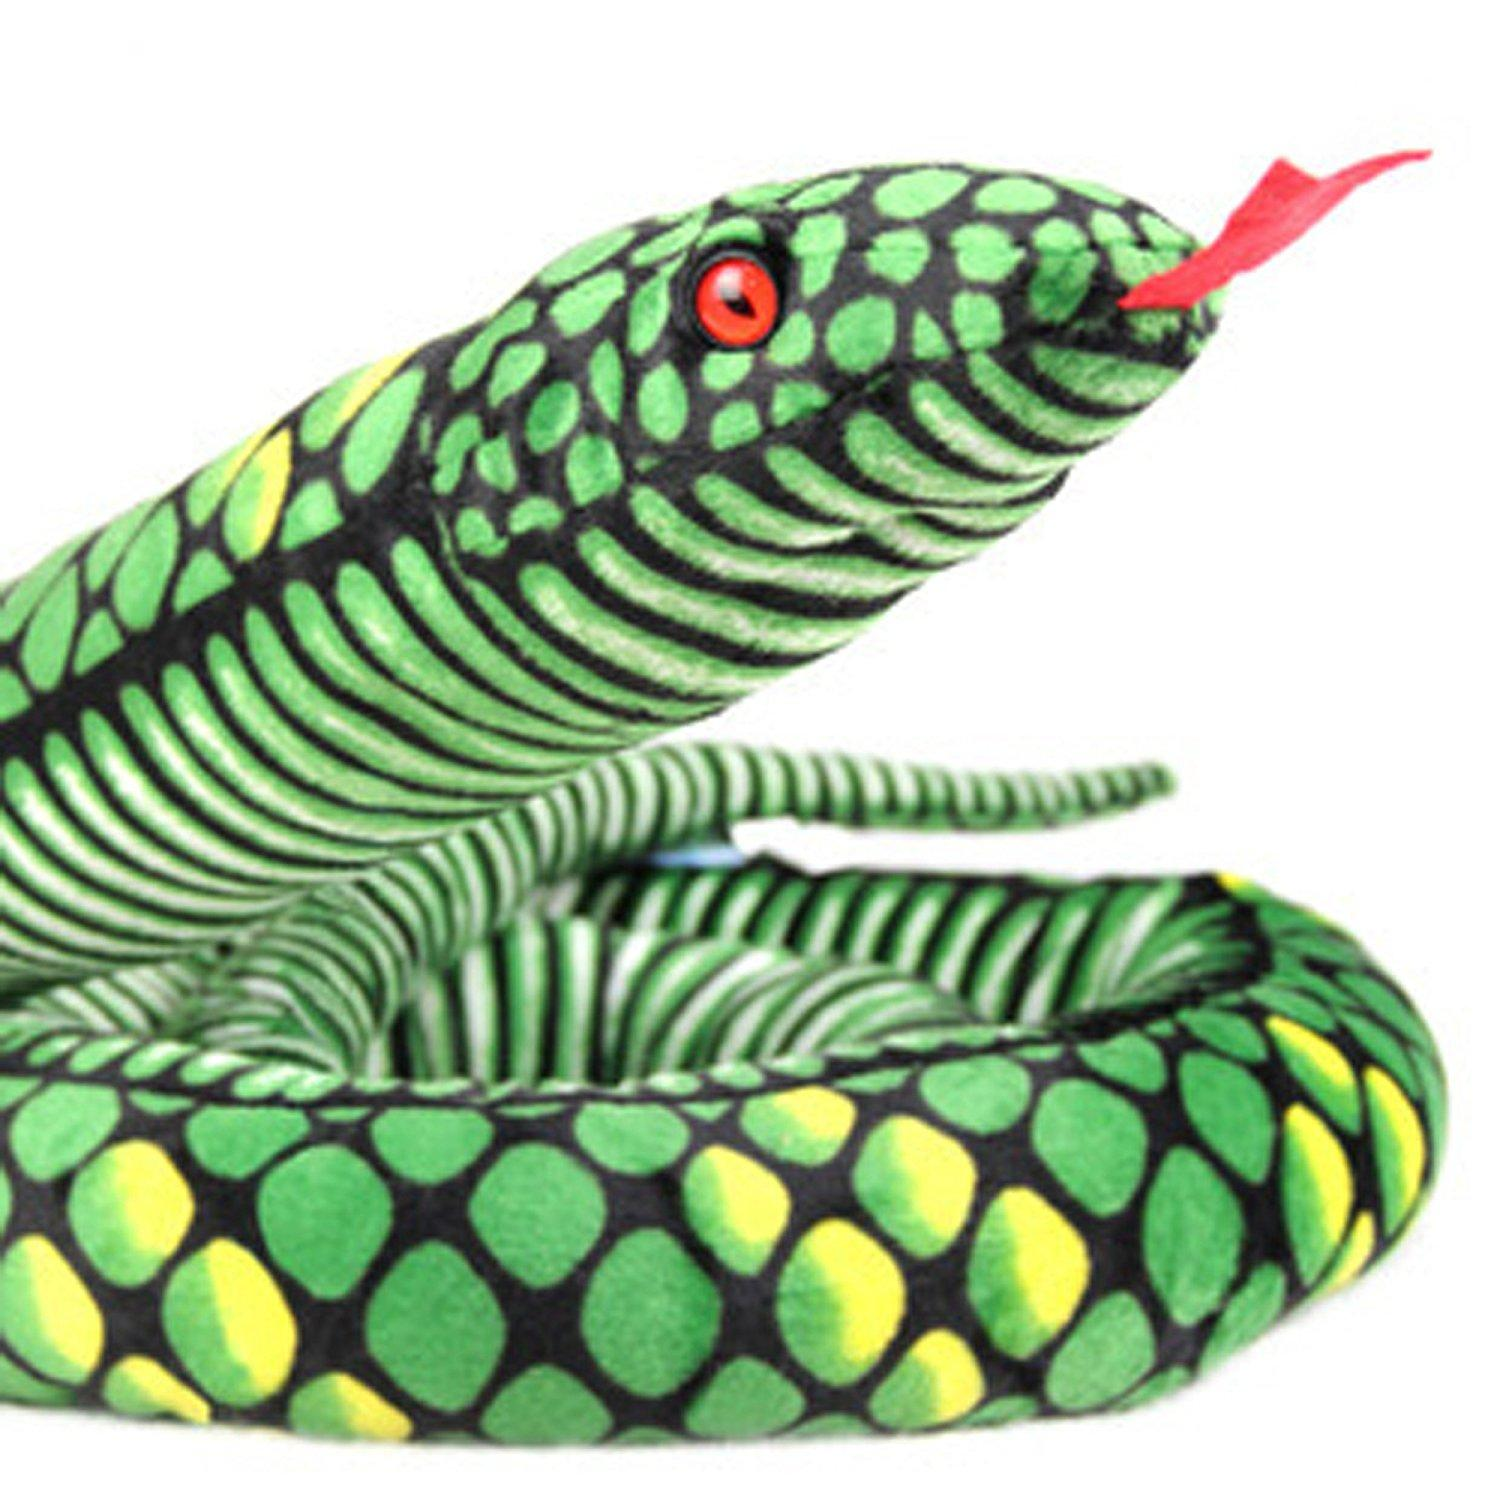 2019 High quality Snake Plush Stuffed Animal Best Business Gifts For Your Children,Boys,Girls and Friends